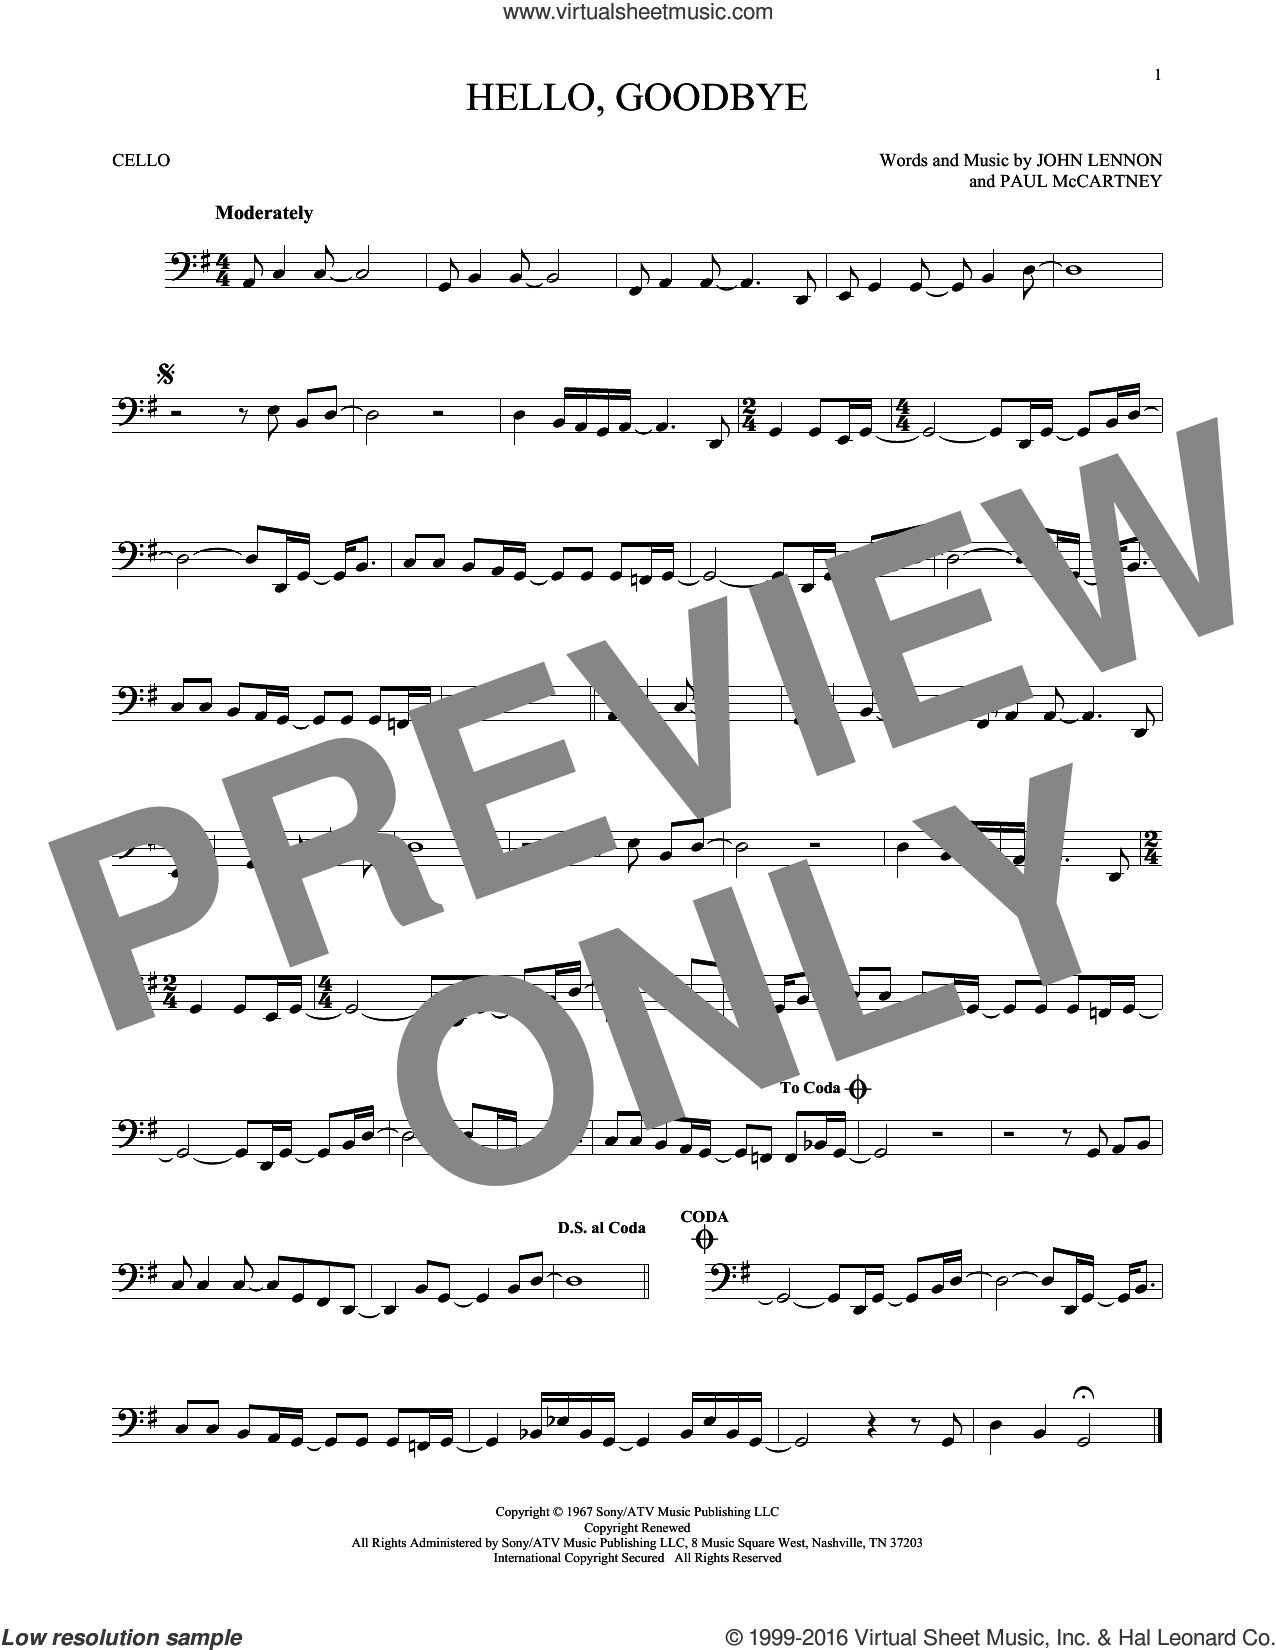 Hello, Goodbye sheet music for cello solo by The Beatles, John Lennon and Paul McCartney, intermediate skill level